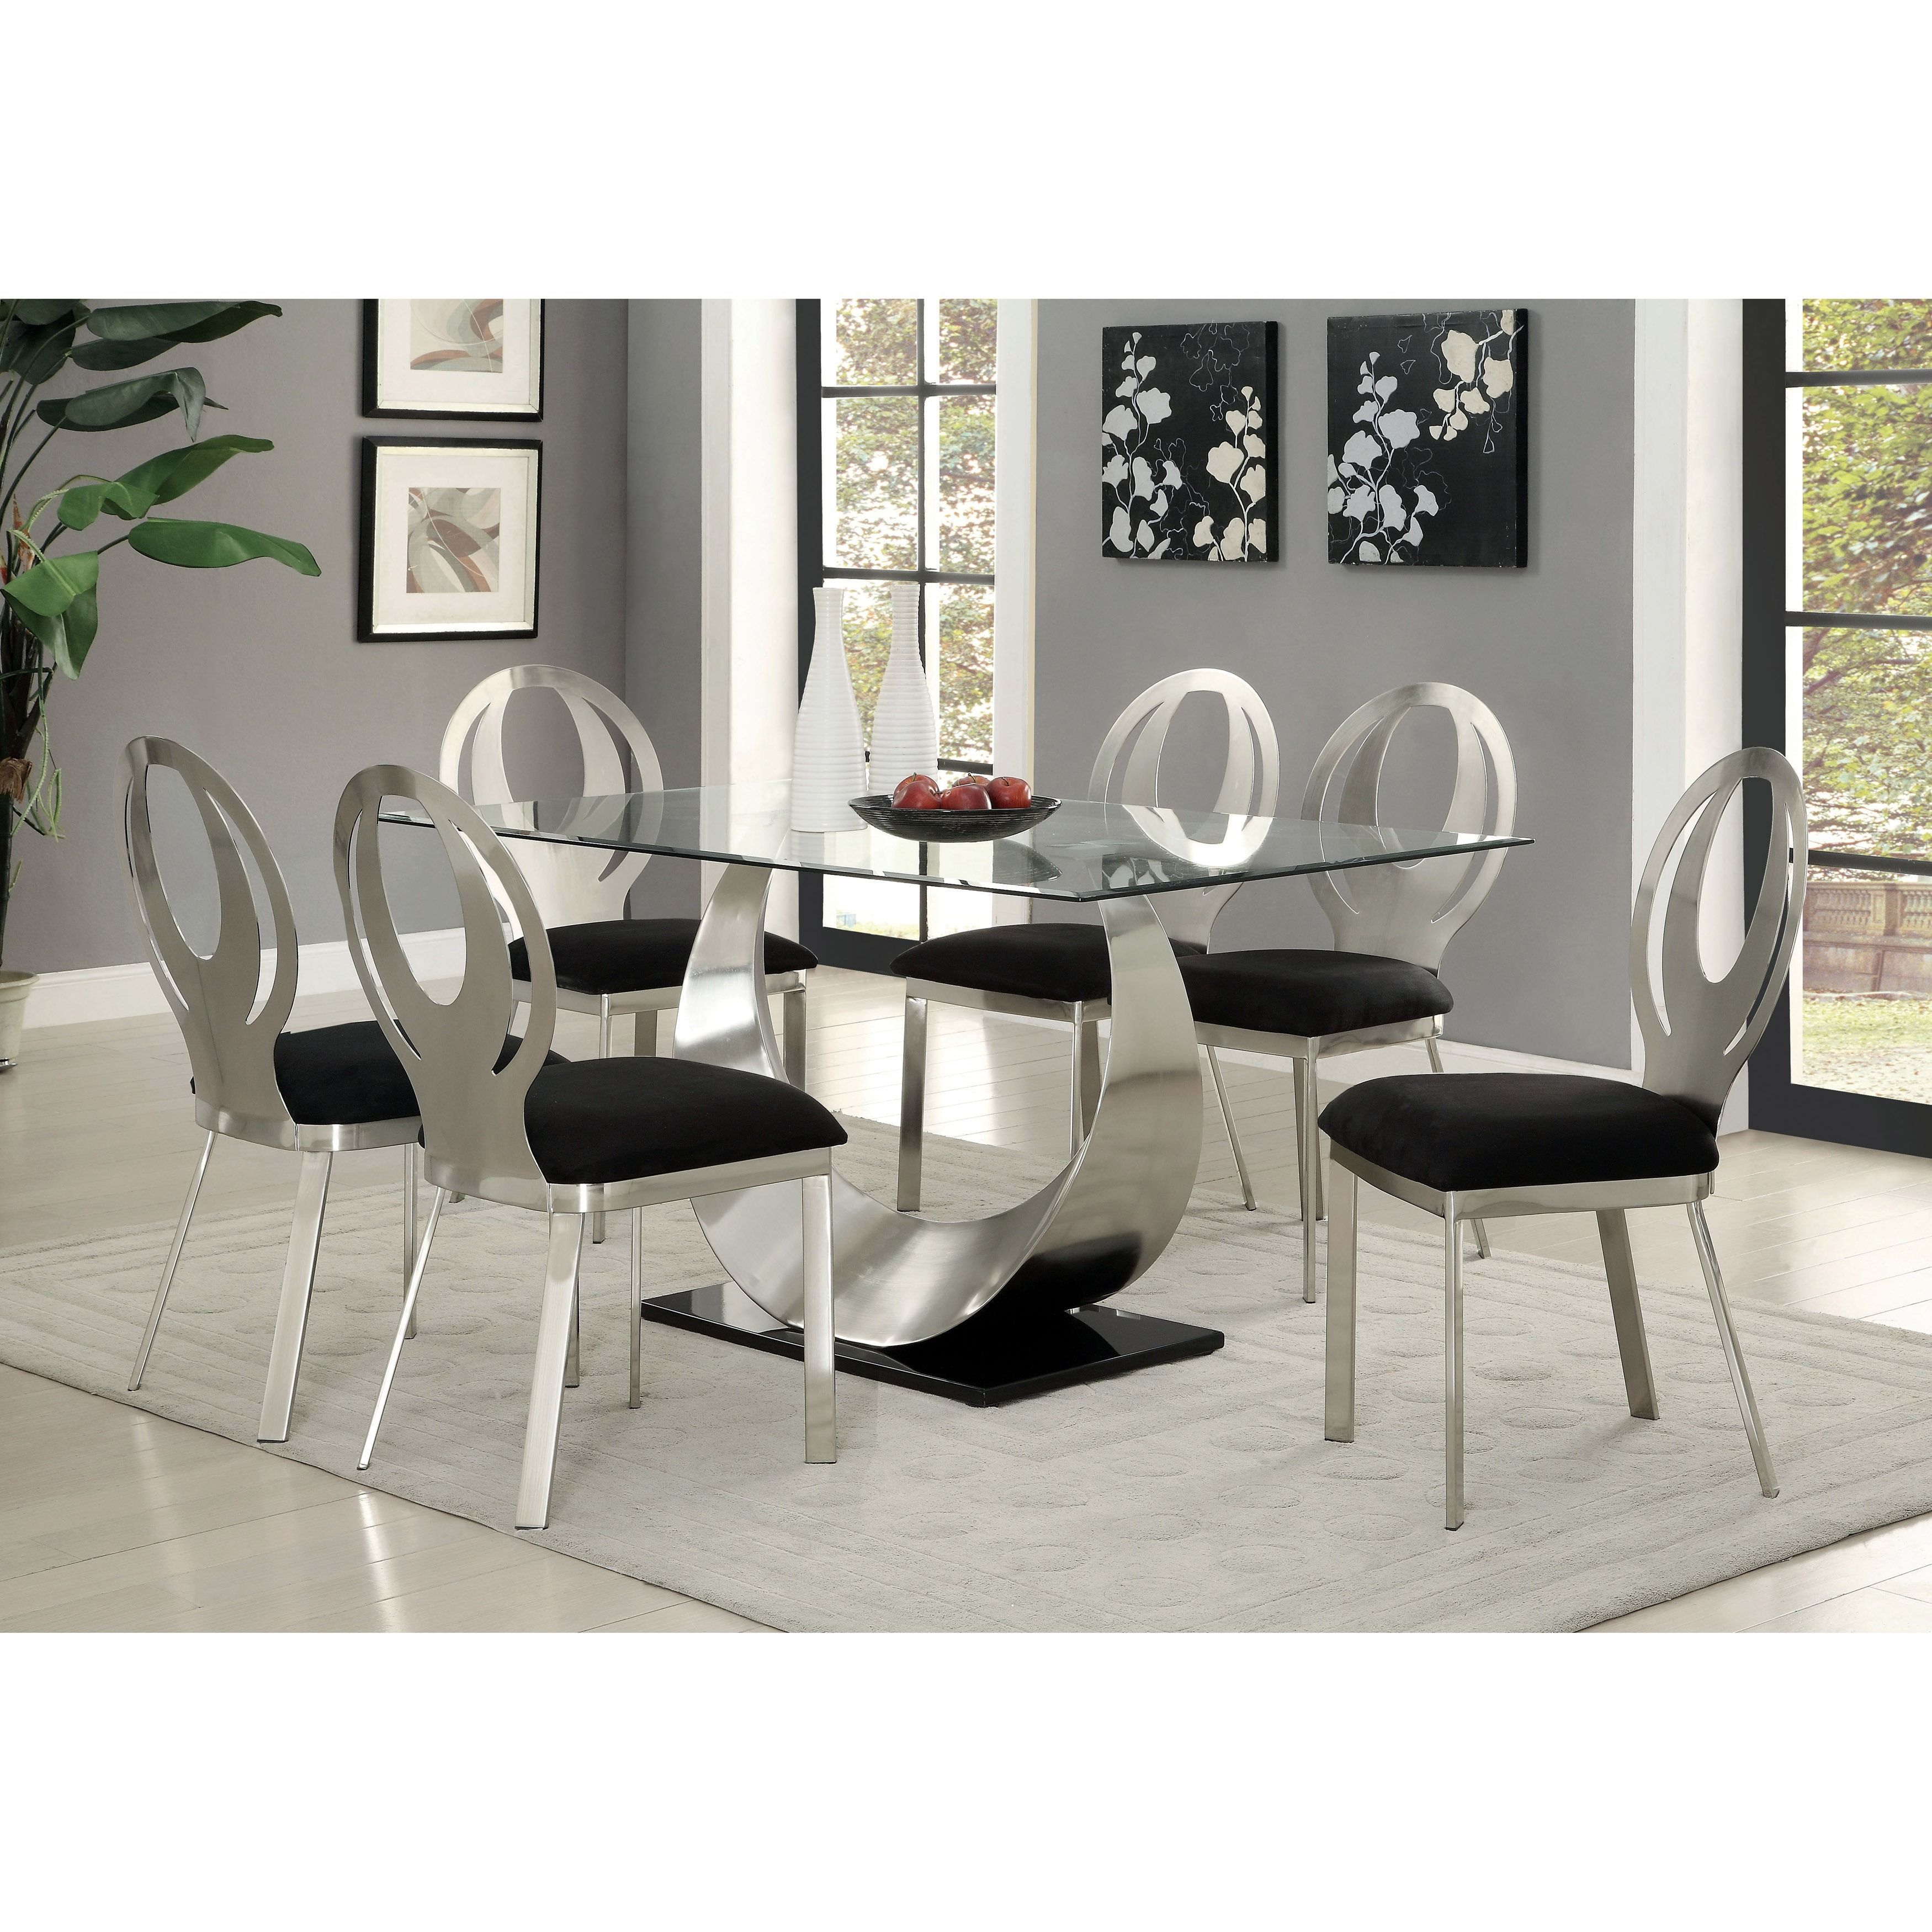 Furniture Of America Heer Contemporary Silver 60 Inch Dining Table